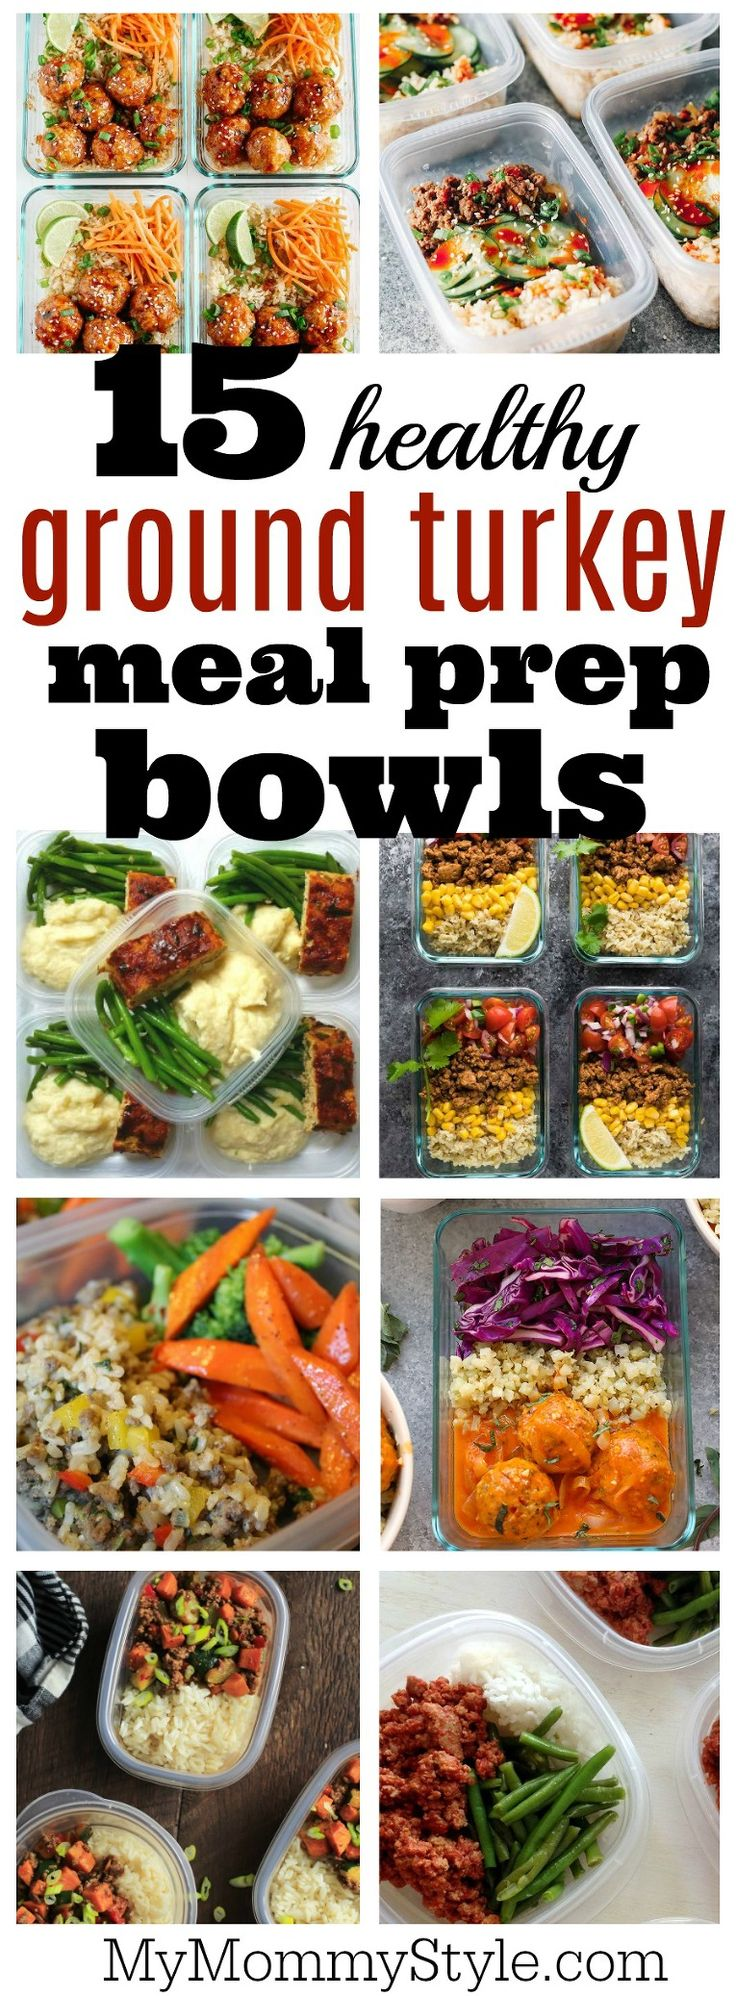 Fifteen favorite meal prep bowls using lean ground turkey. These are easy and delicious and a great way to stay healthy and save money at lunchtime.